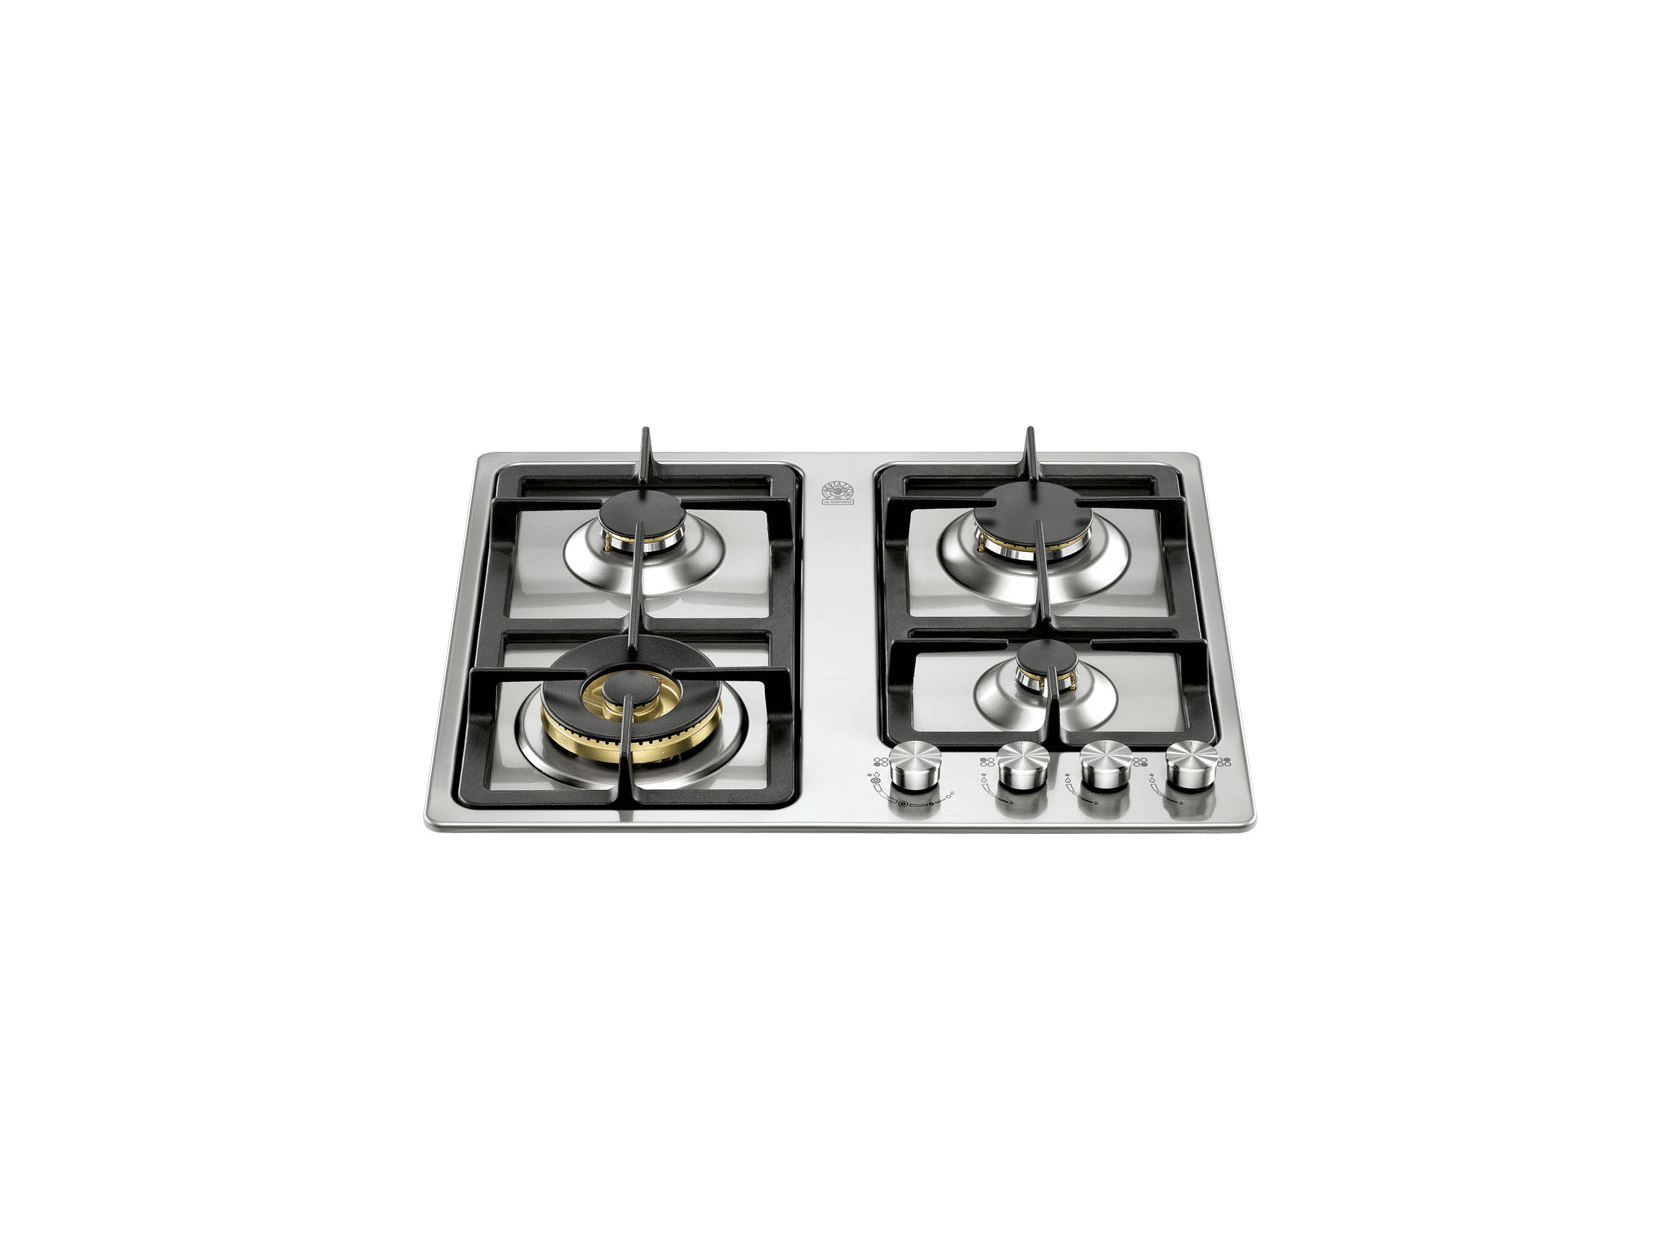 60 4-Brass Burners Front Control | Bertazzoni La Germania - Stainless